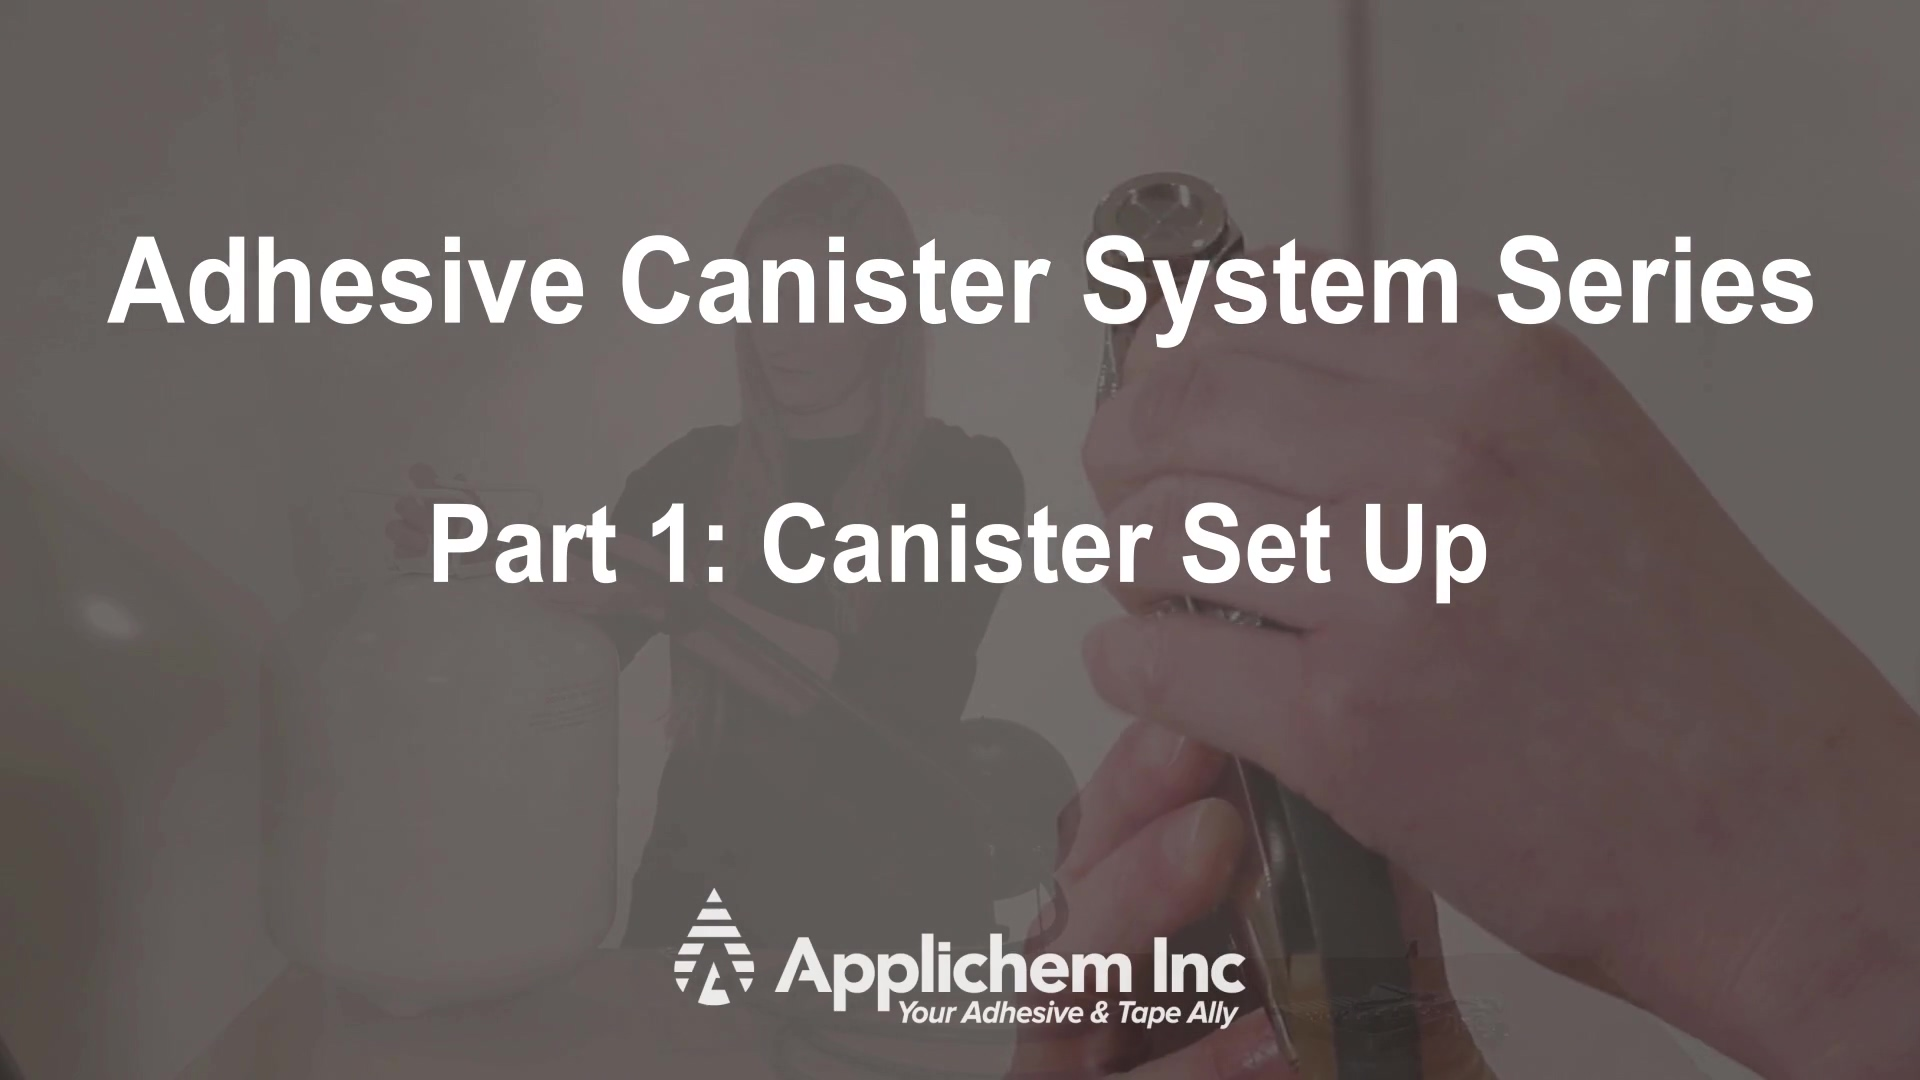 1 - Canister Set-Up